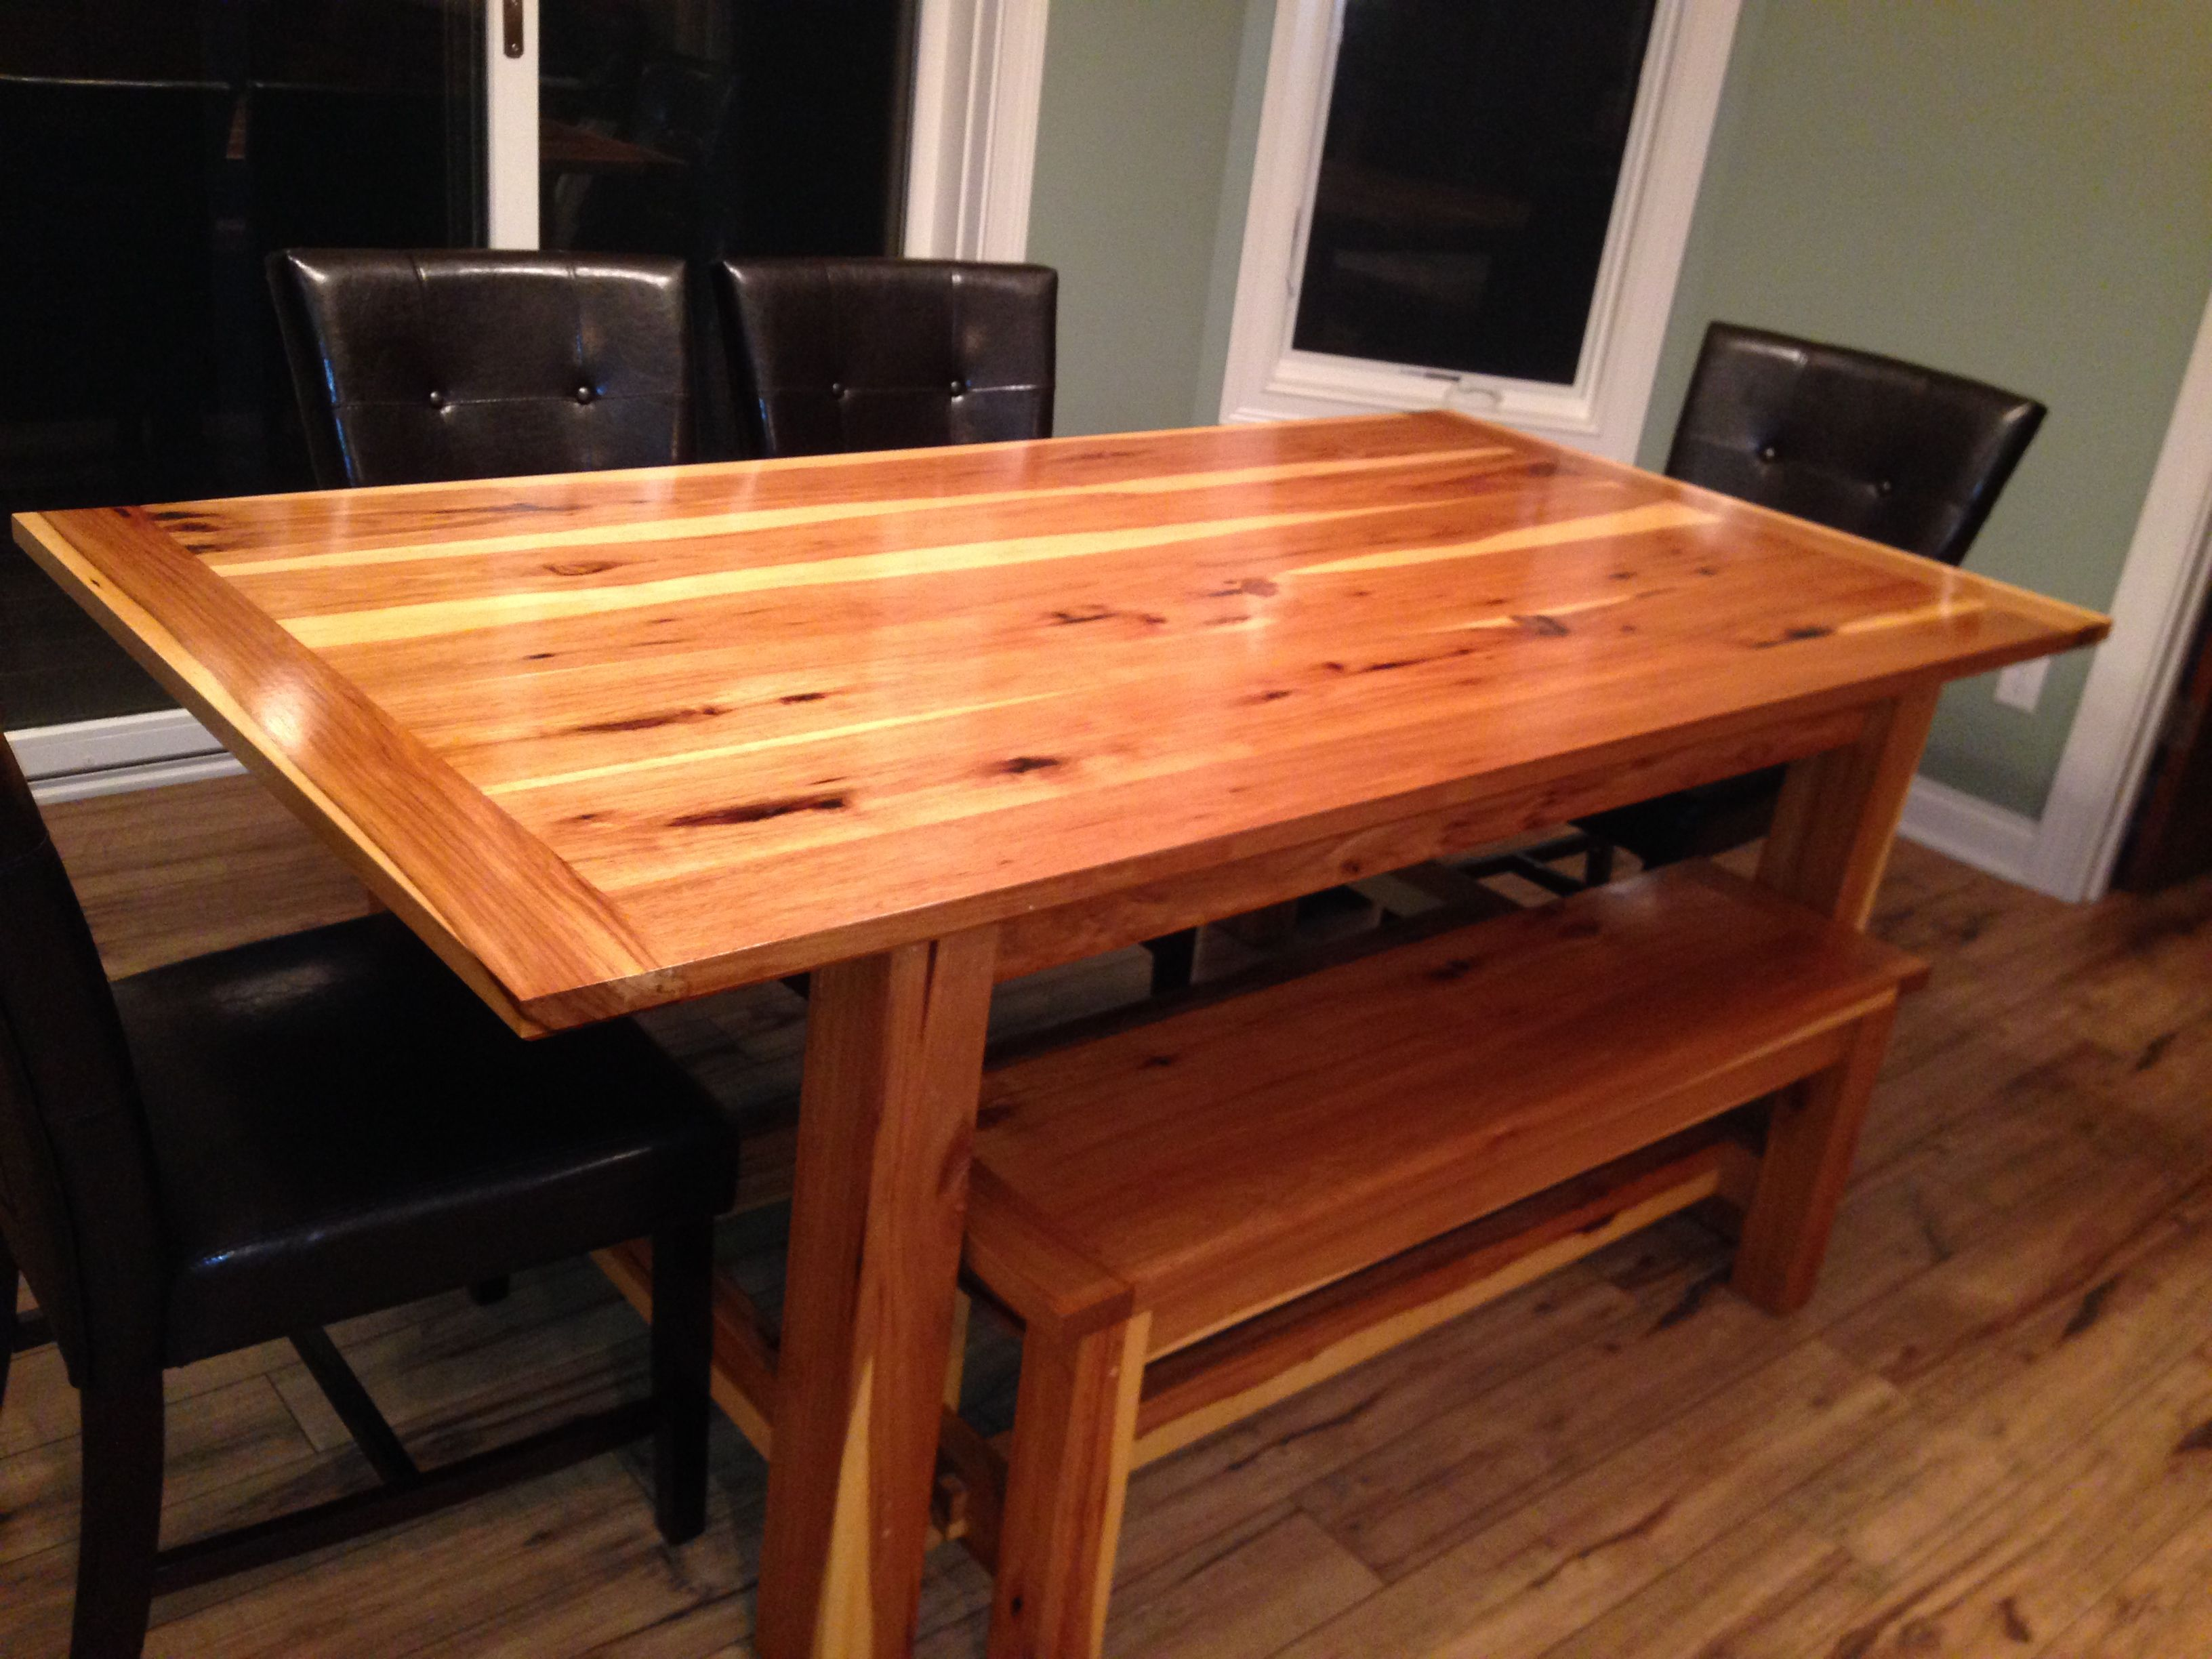 Custom Made Hickory Farm Table With Matching Bench by Black Swamp Furnishings | CustomMade.com